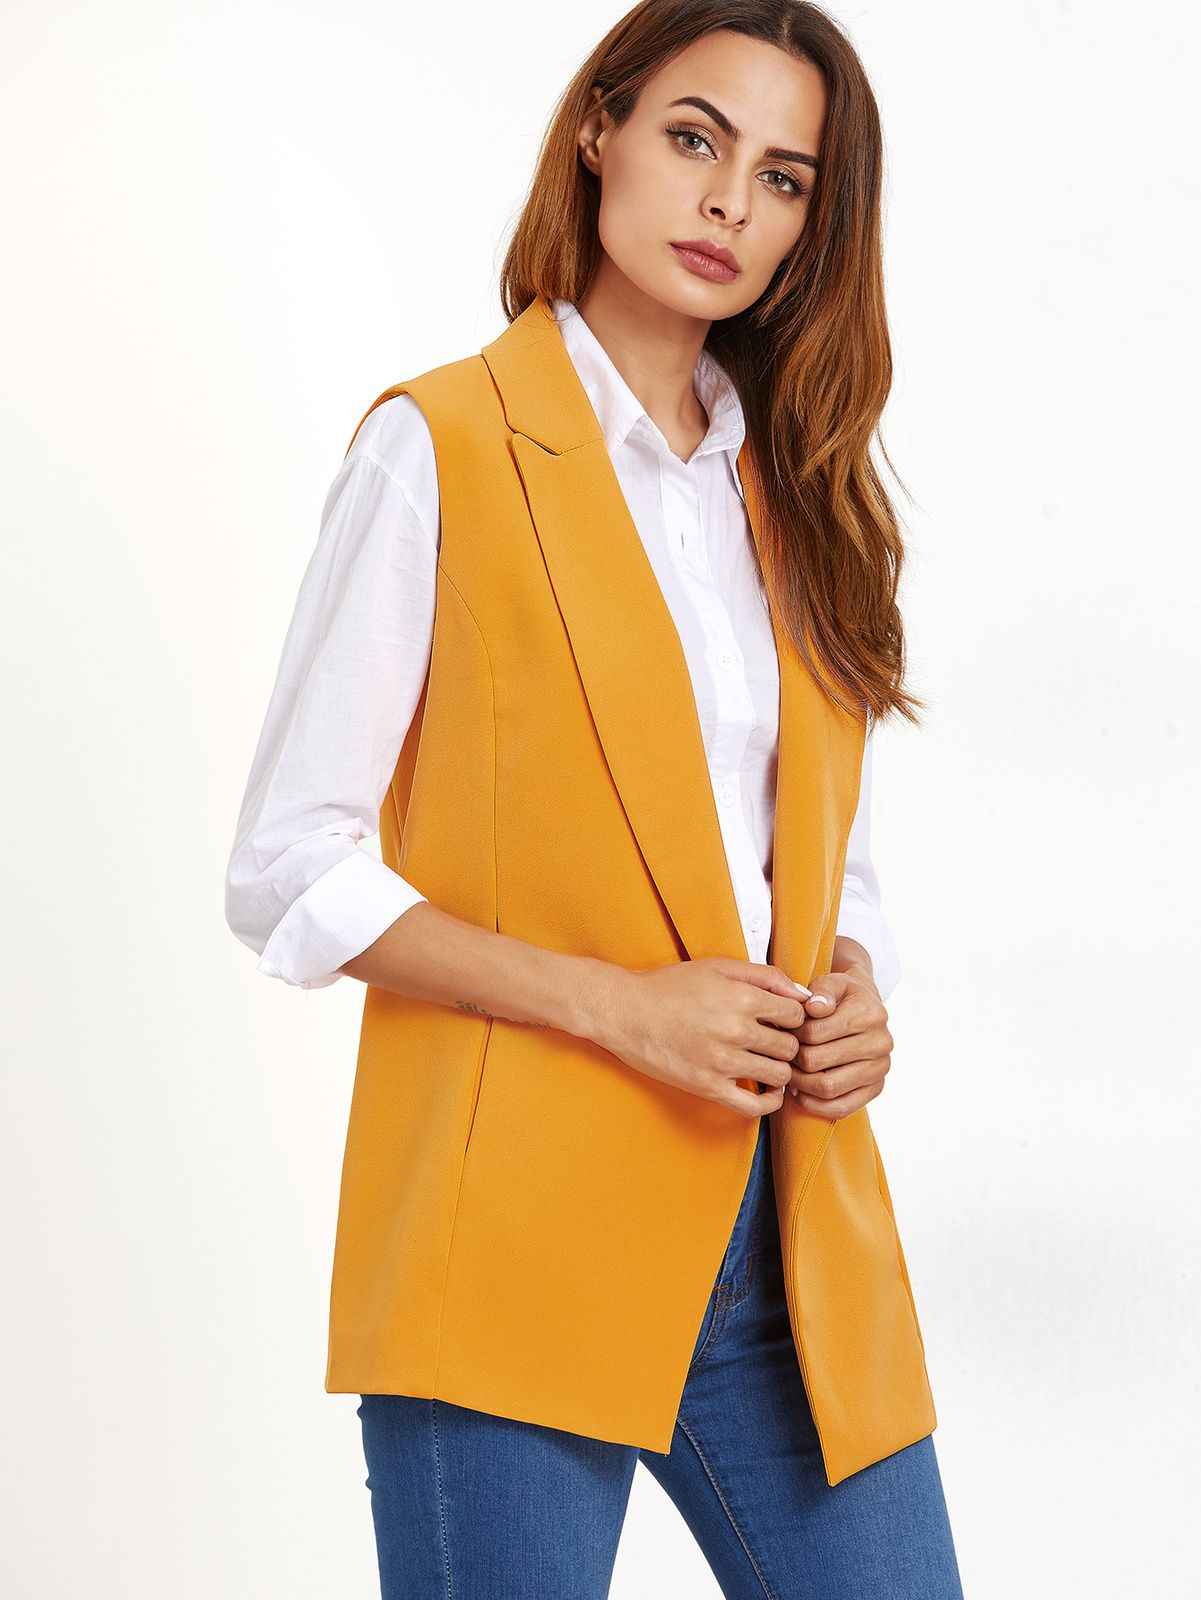 Women's Yellow Double Breasted Sleeveless Blazer